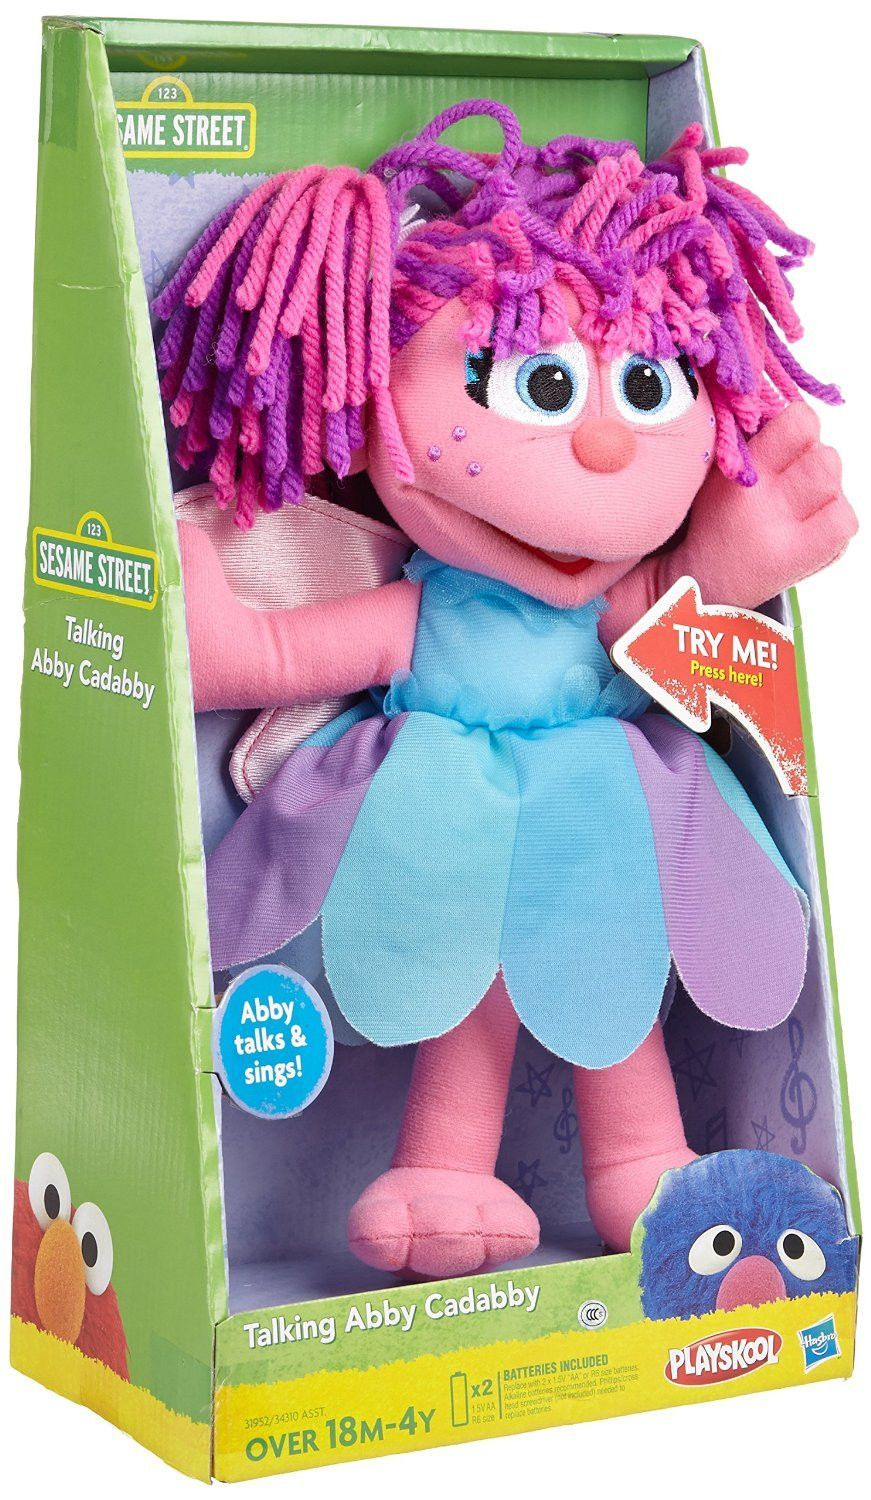 Sesame Street Talking Abby Cadabby In 2019 Abby Cadabby